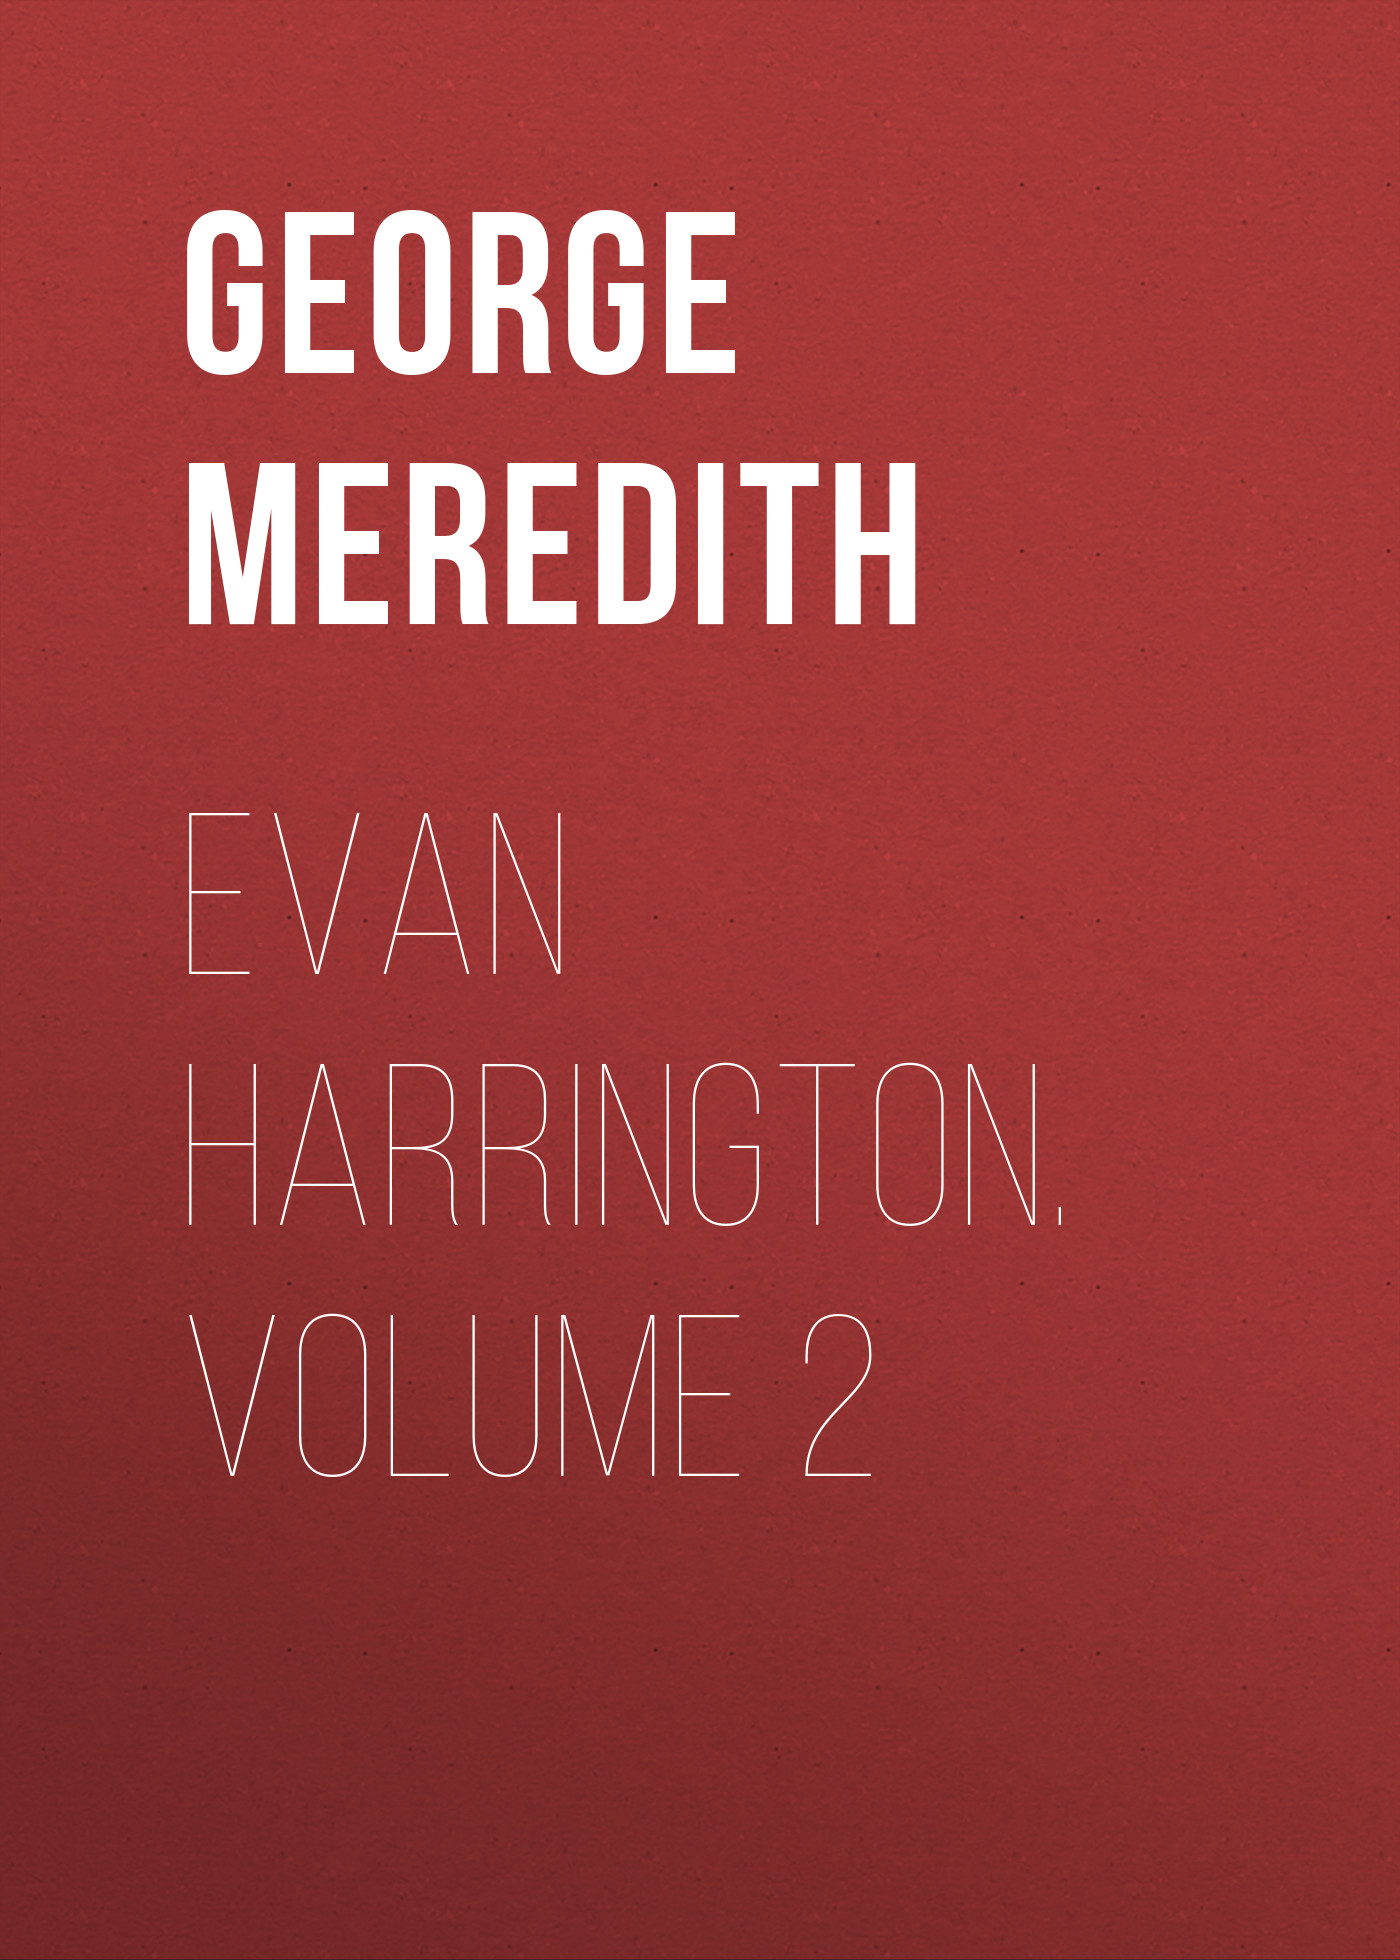 цена George Meredith Evan Harrington. Volume 2 в интернет-магазинах